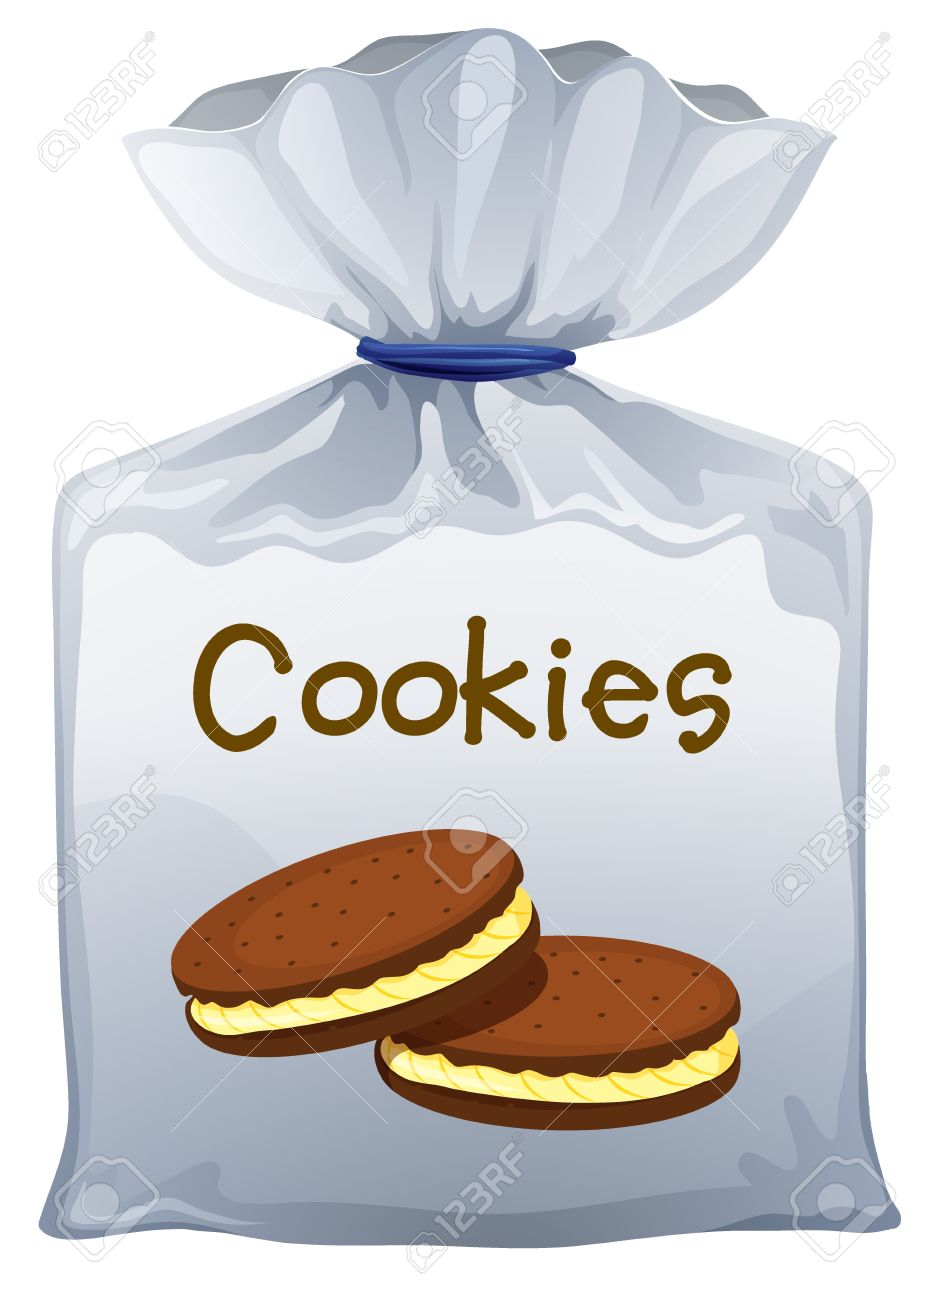 Illustration of a pouch bag of cookies on a white background Stock Vector - 17100516